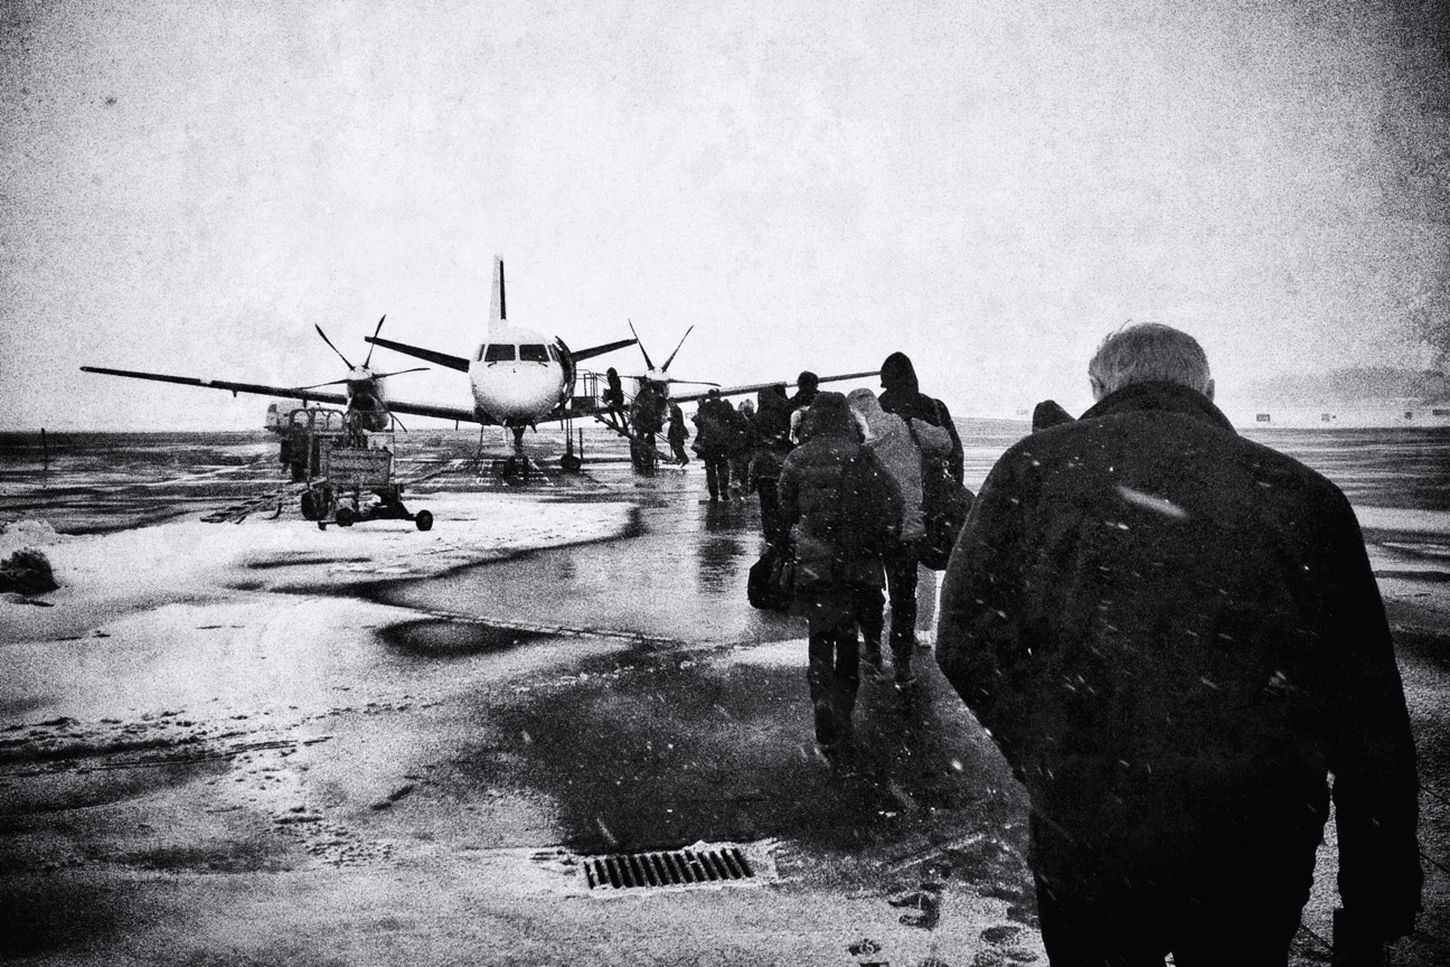 Boarding Blackandwhite At The Airport